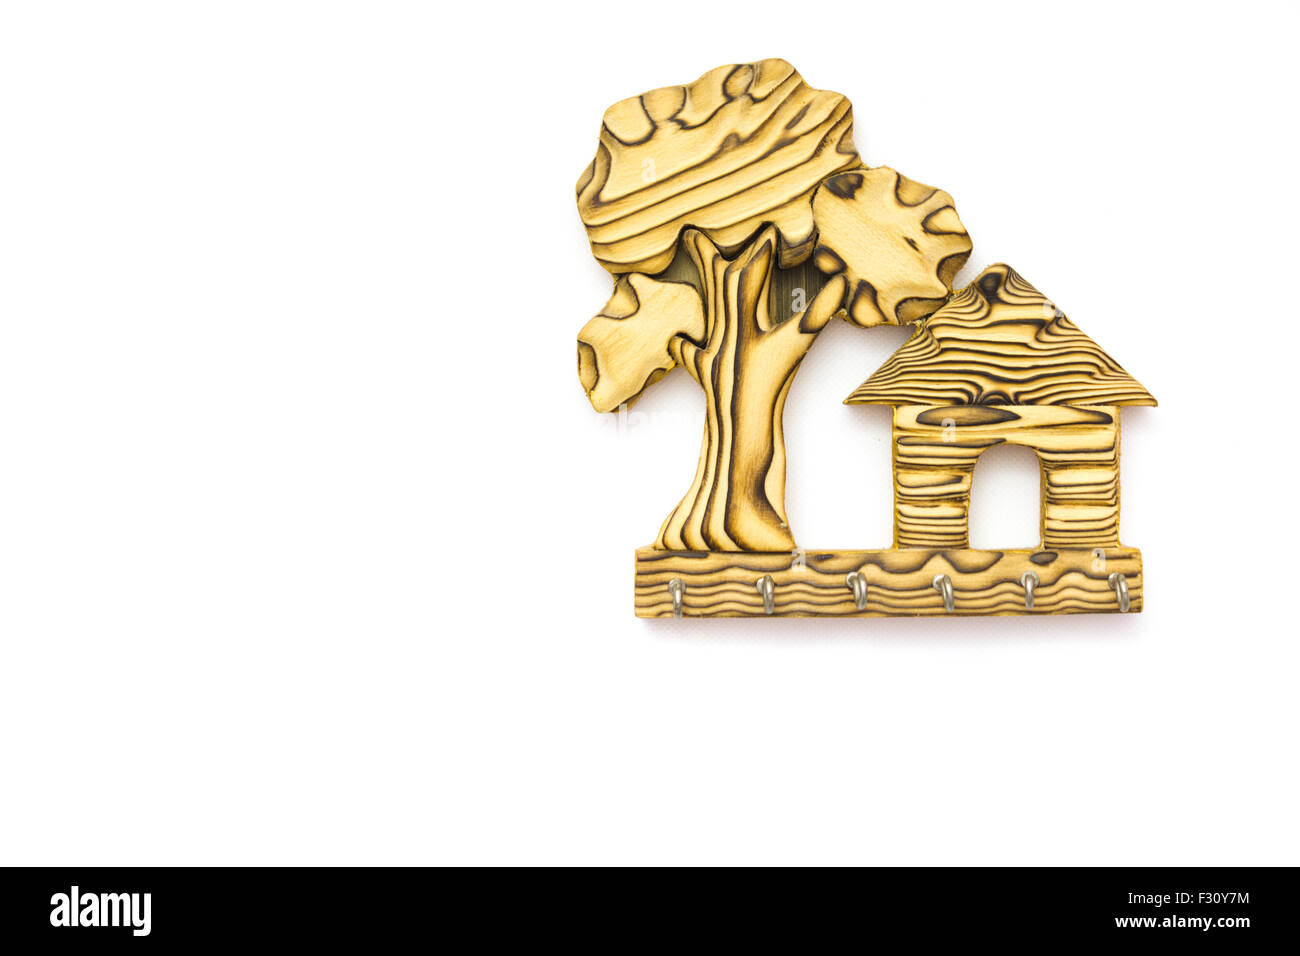 Home Key Holder For Wall Wooden Wall Hanging Key Holder Home Shaped Stock Photo 87917192